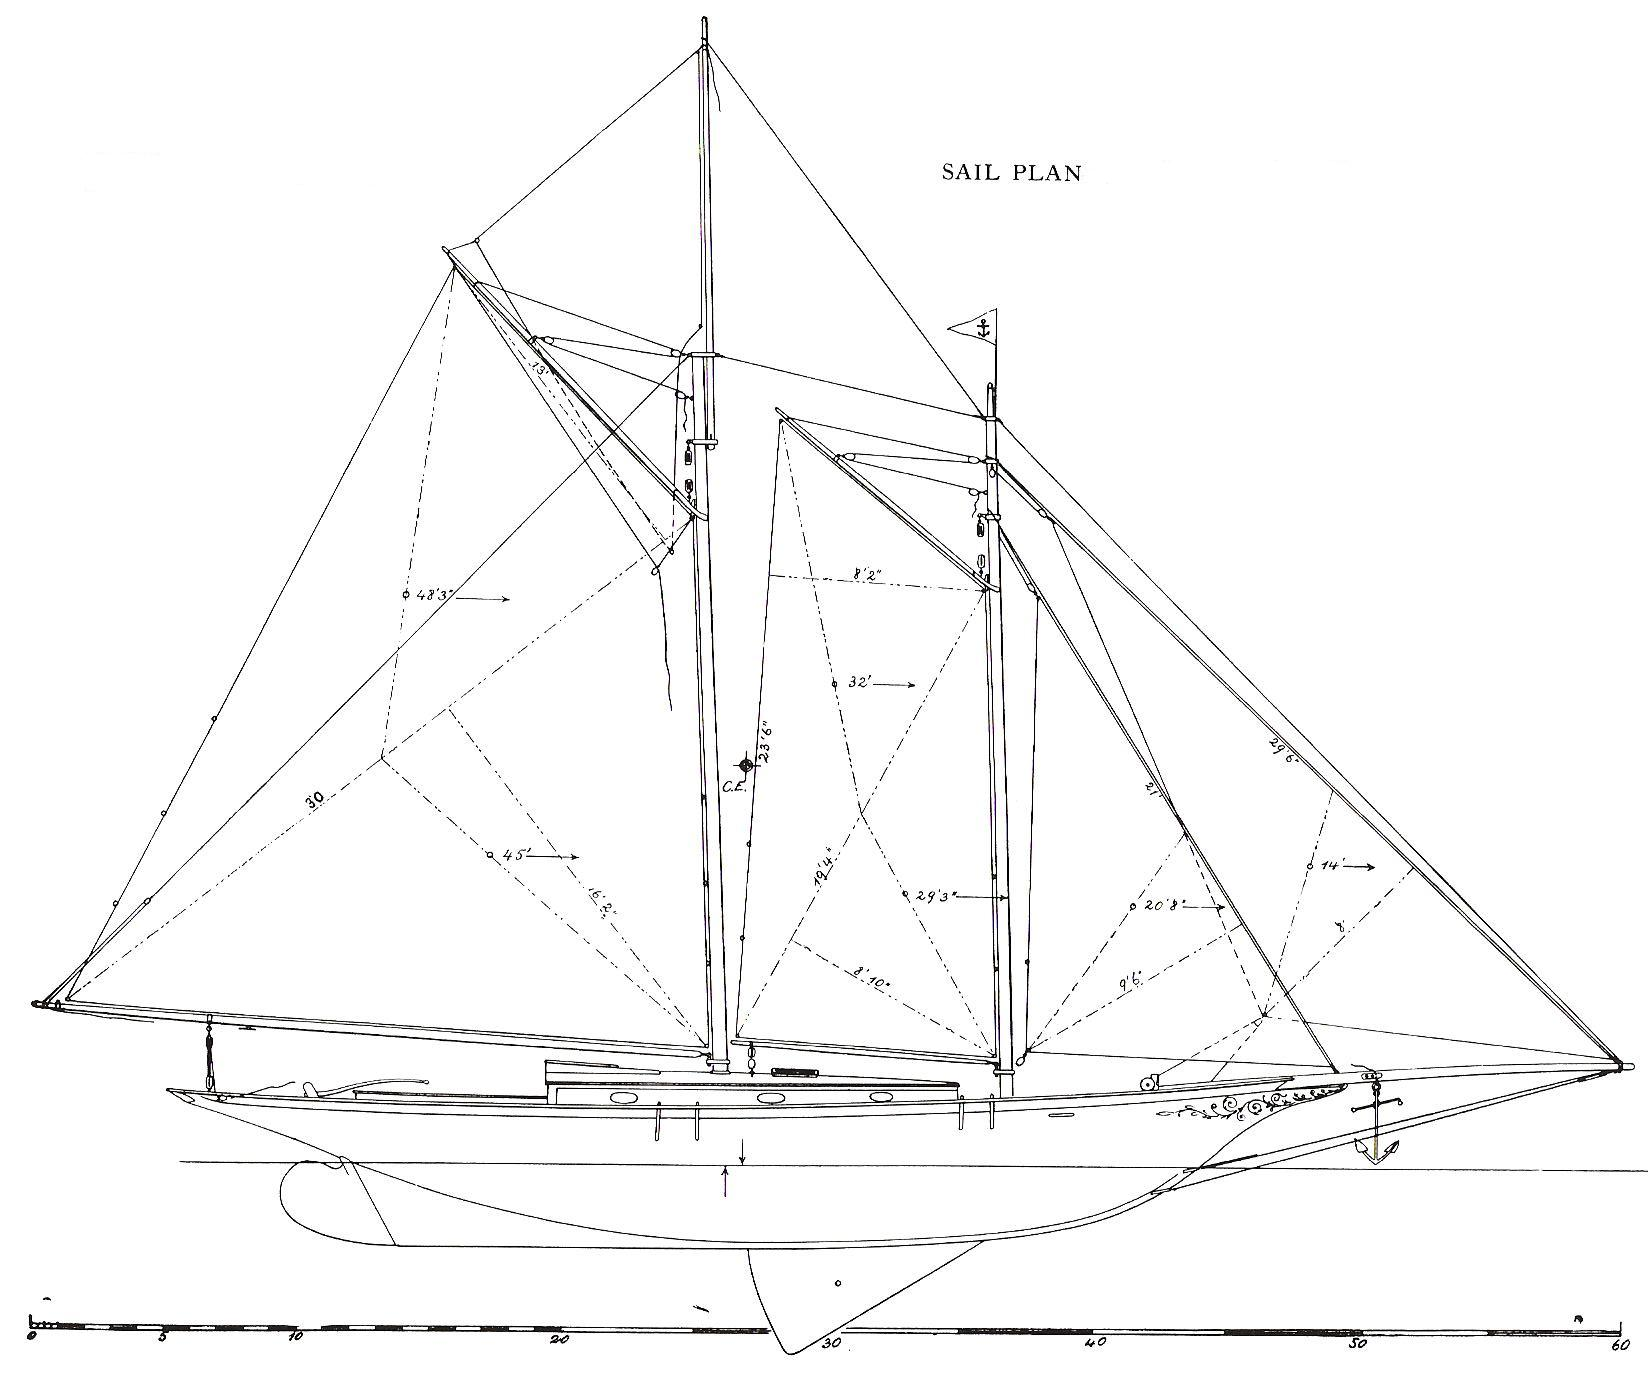 sail_plan_centre-board_schooner